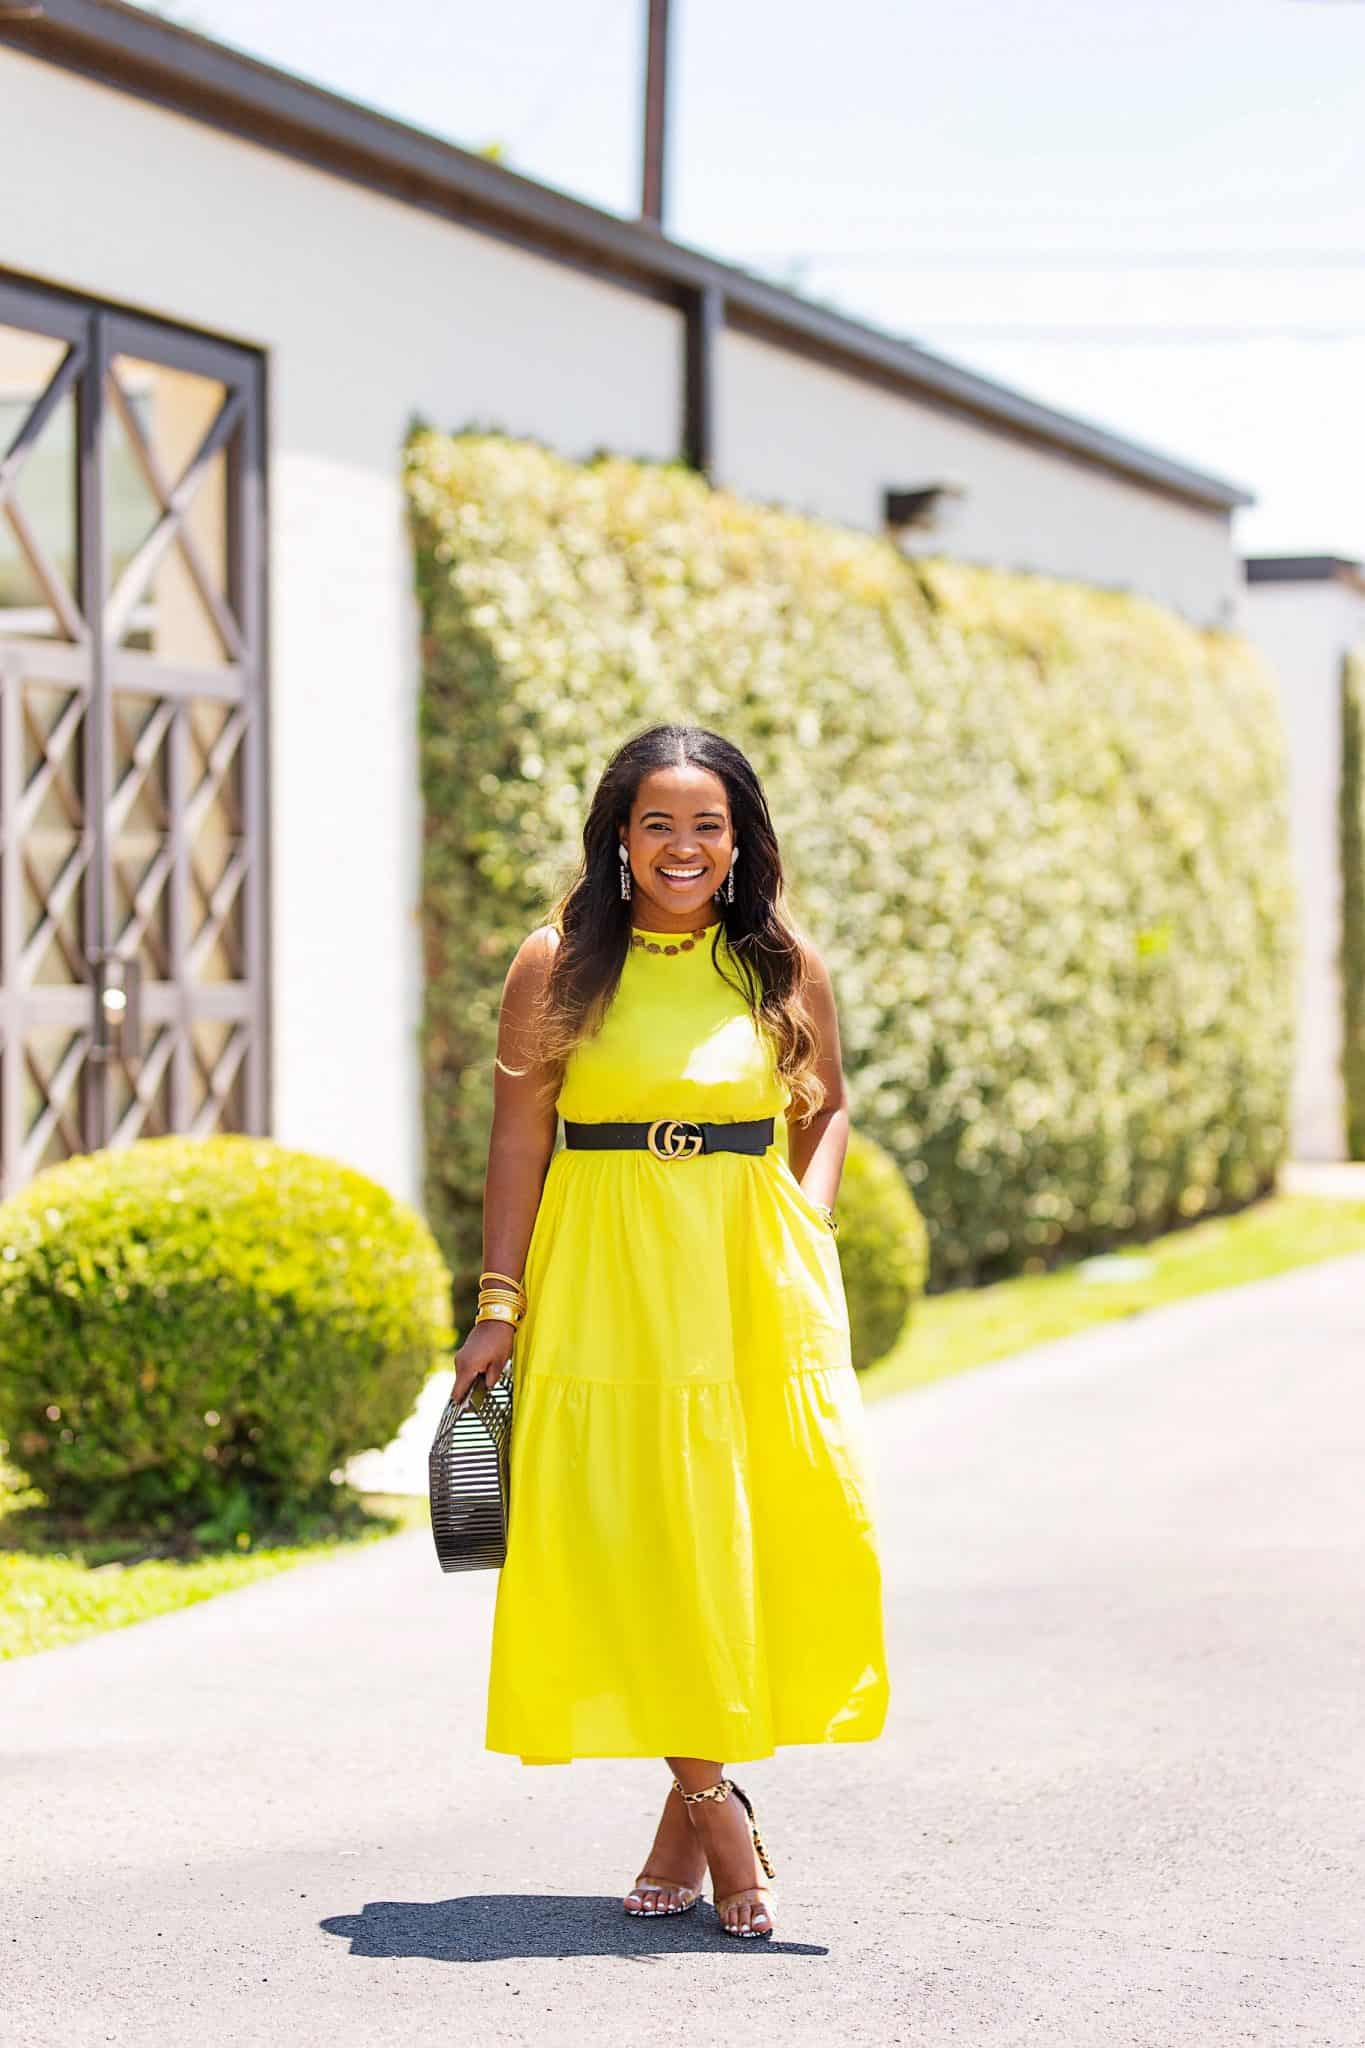 Day to night outfit for Summer styled by top US fashion blog, Glamorous Versatility: image of a woman wearing a Target yellow maxi dress, Gucci leather belt, Steve Madden sandals, Red Dress Boutique bamboo bag, and BaubleBar leopard earrings.